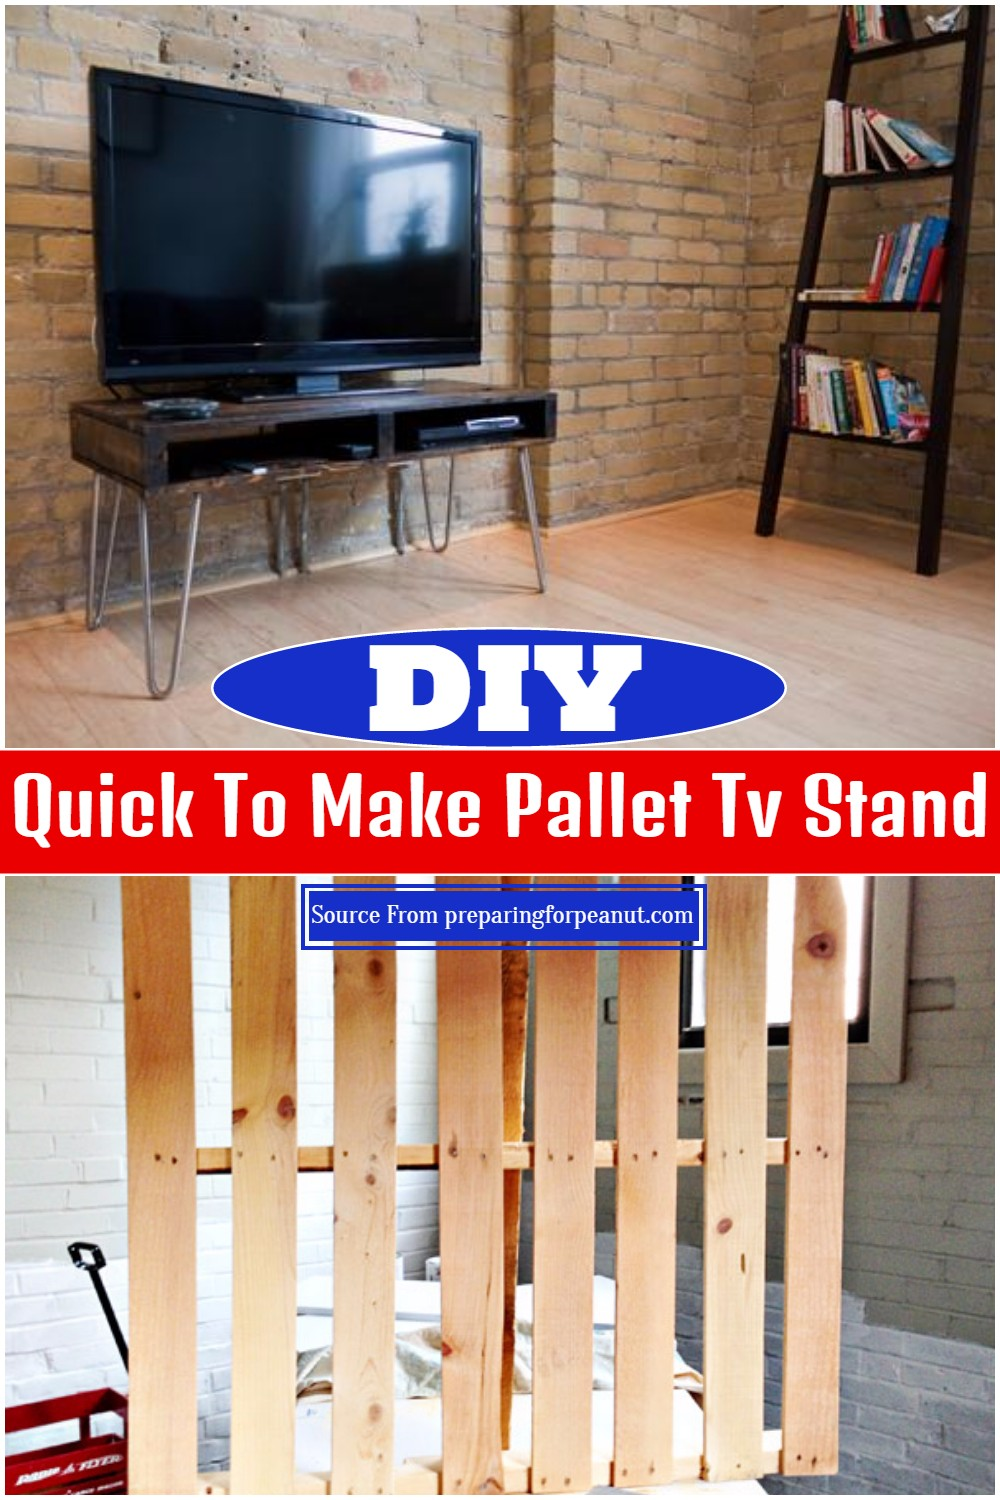 Quick To Make DIY Pallet Tv Stand